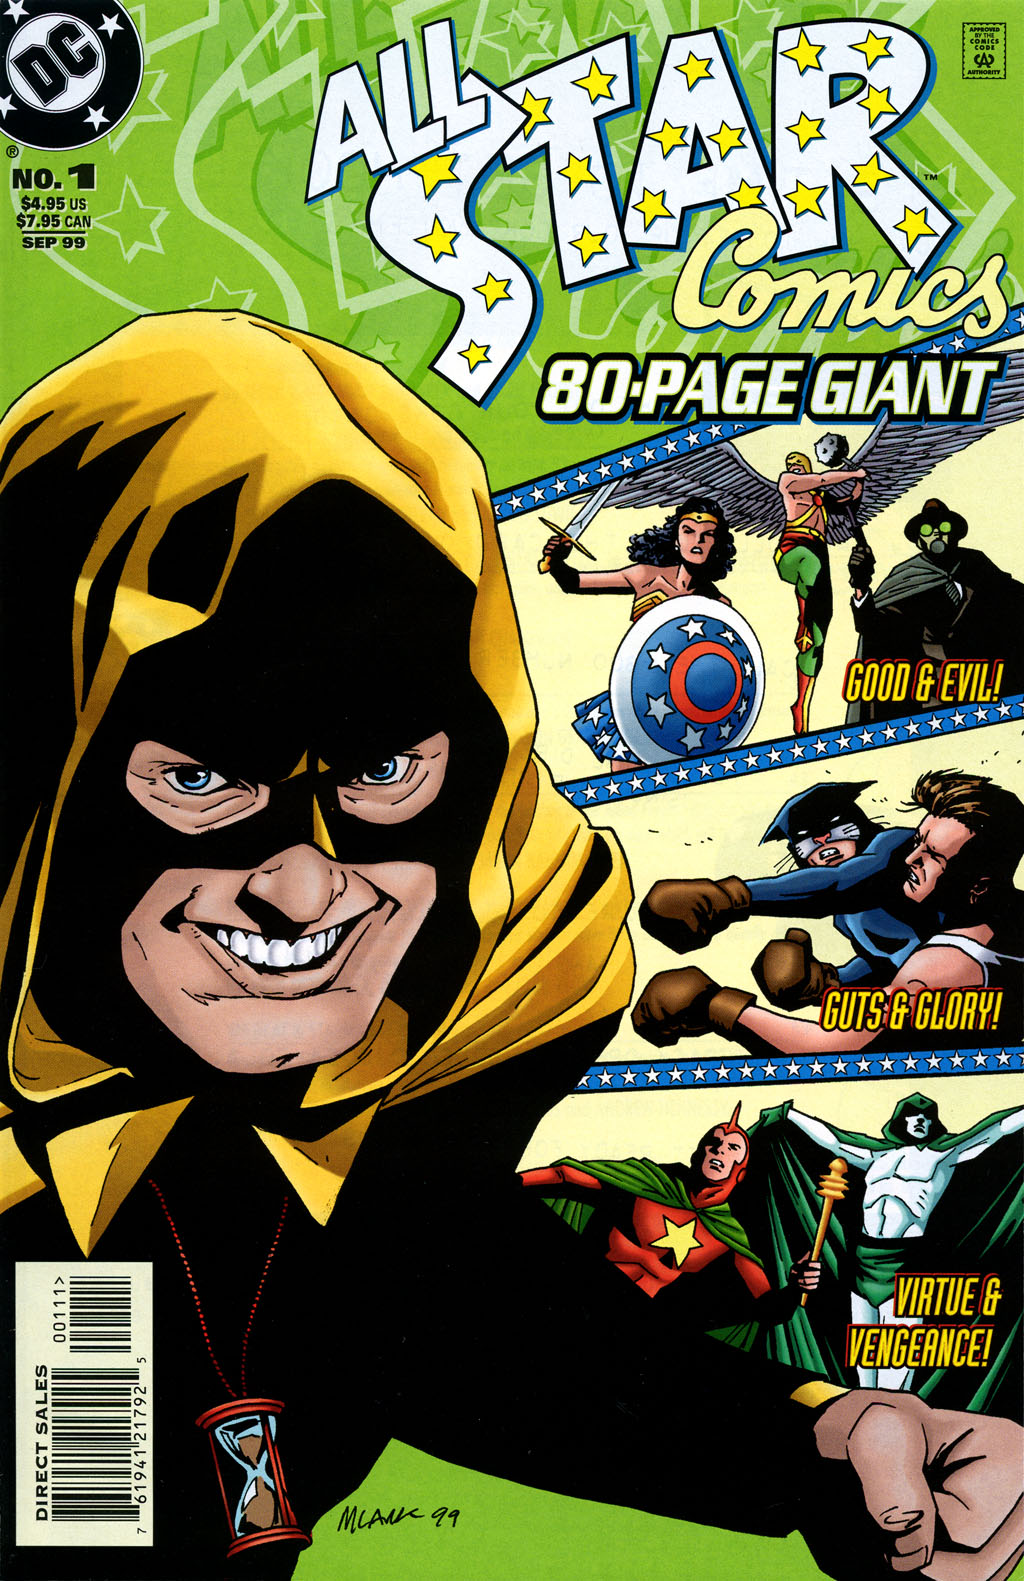 All-Star Comics 80-Page Giant Vol 1 1